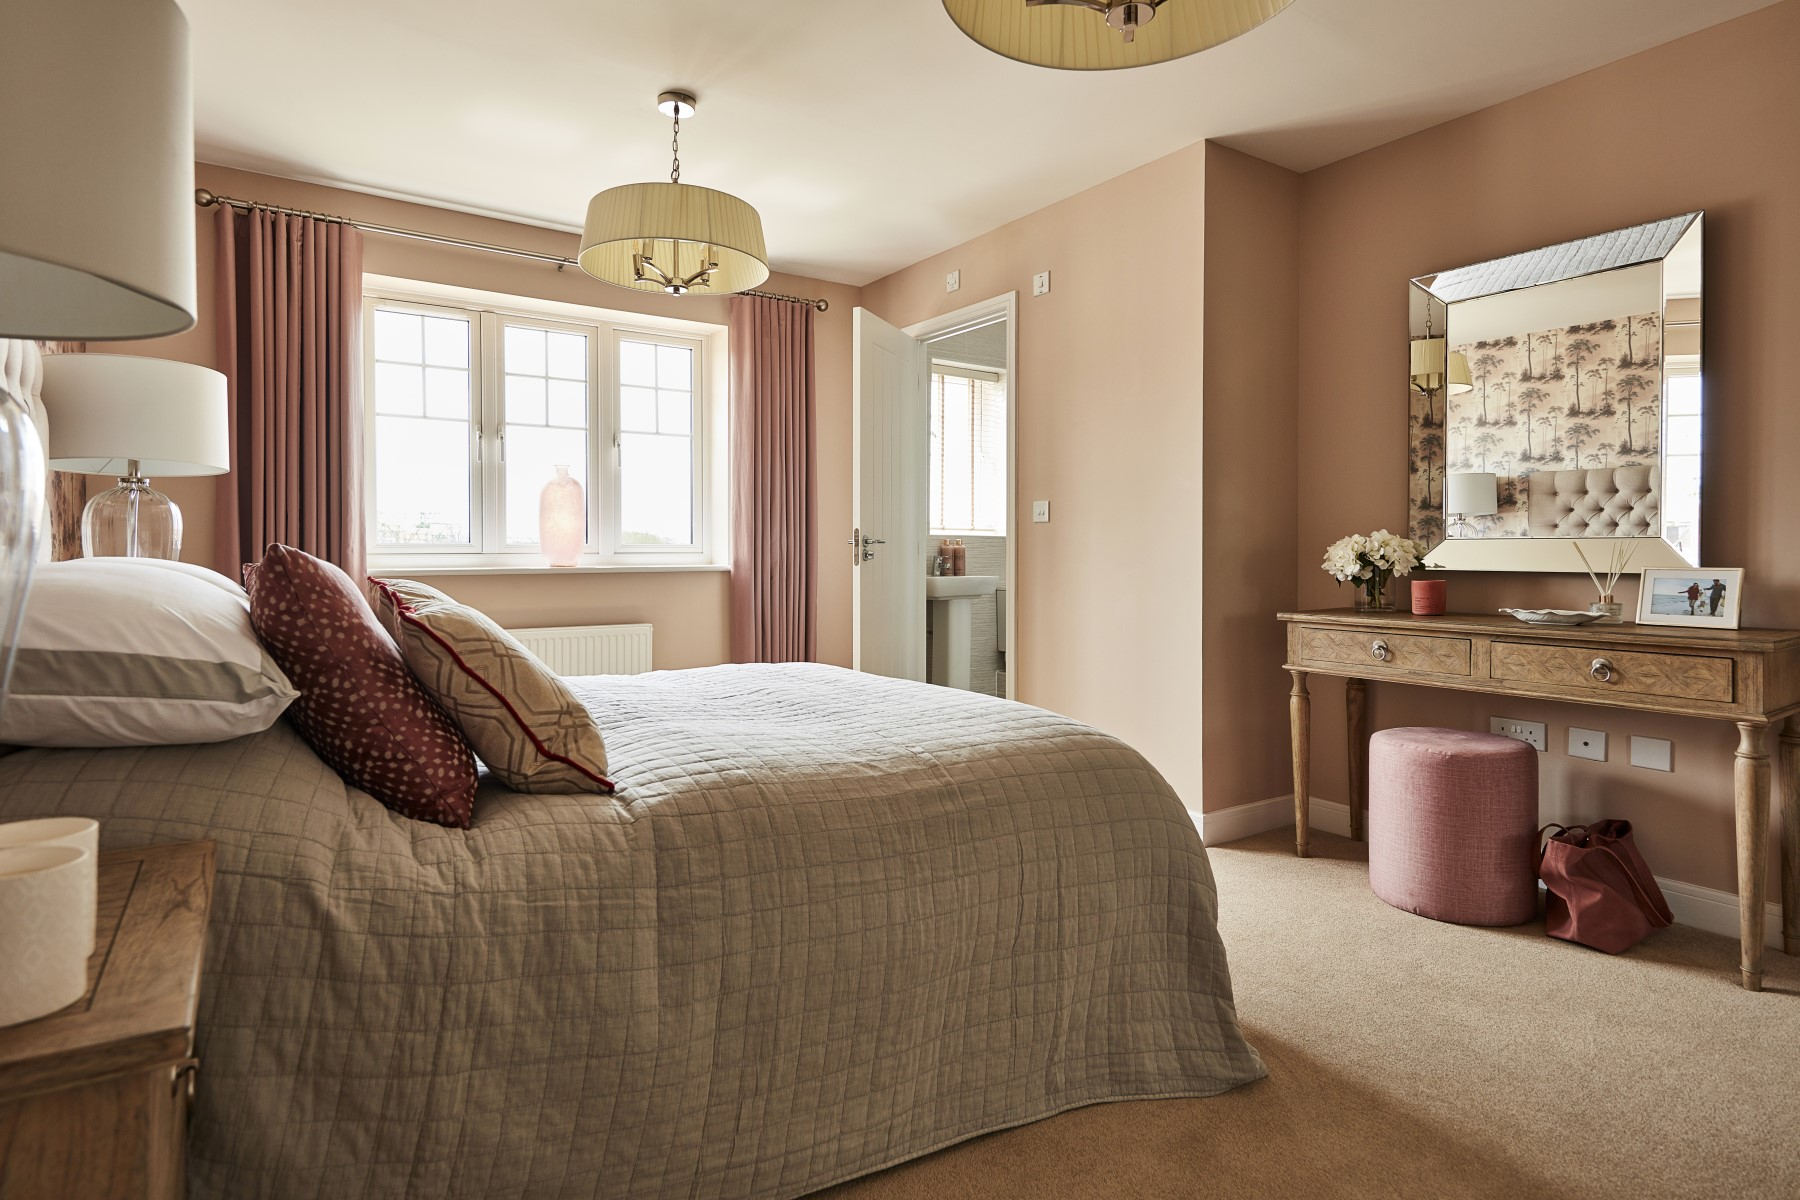 TW OX Thornbury Green_Eynsham_NA45_Marford_Main_Bedroom (2)